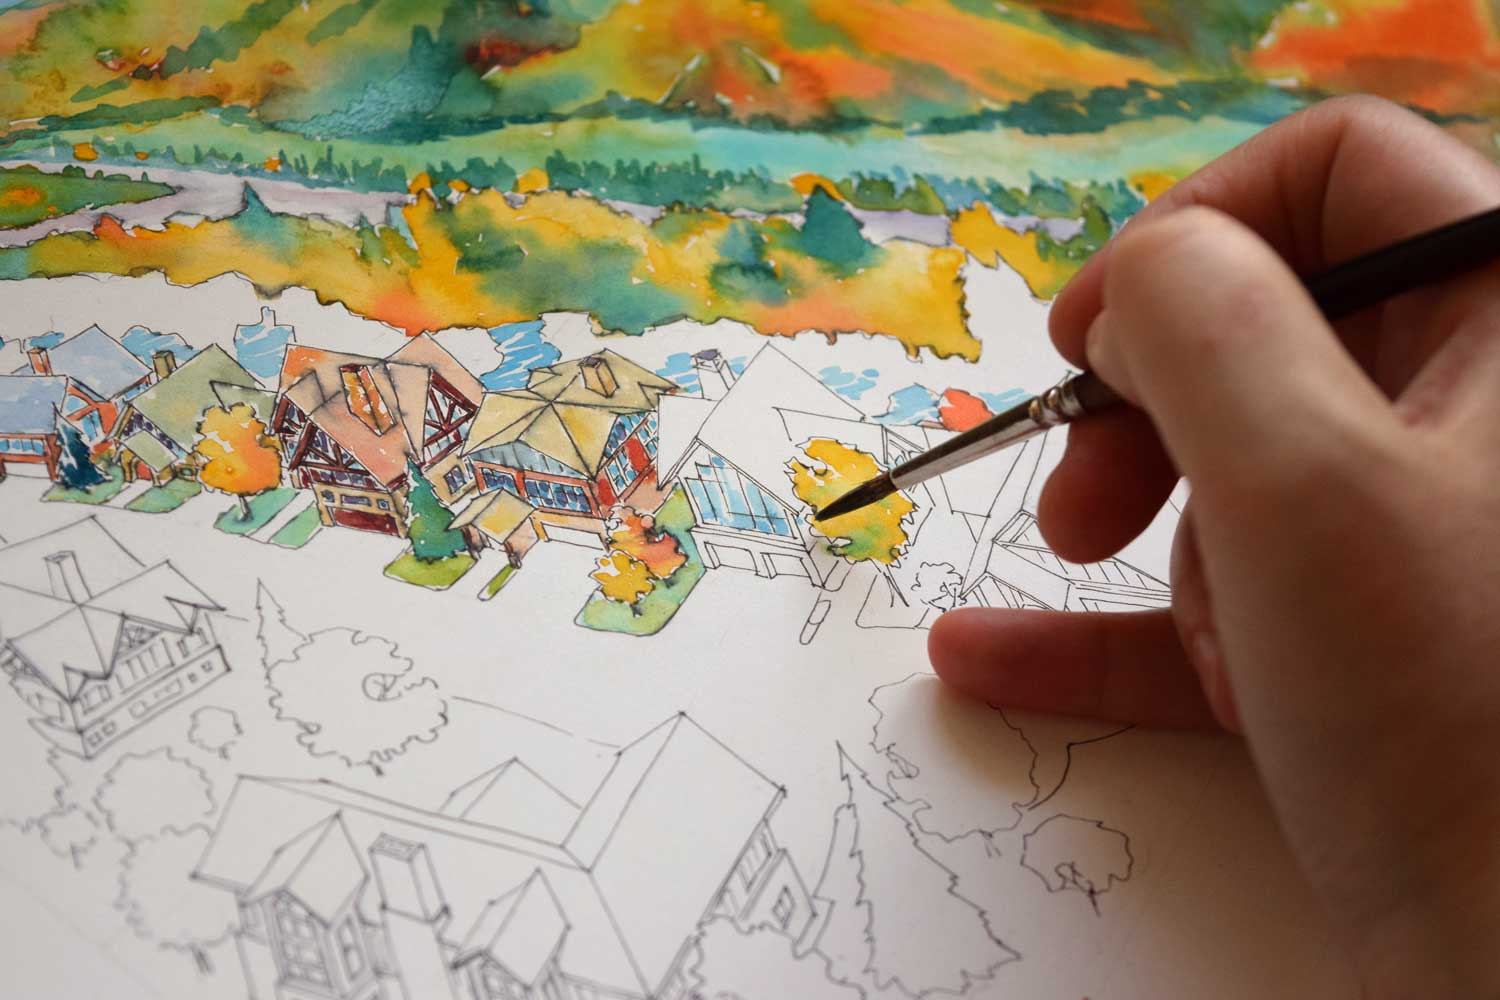 Working on an architectural illustration of a residential development in Colorado